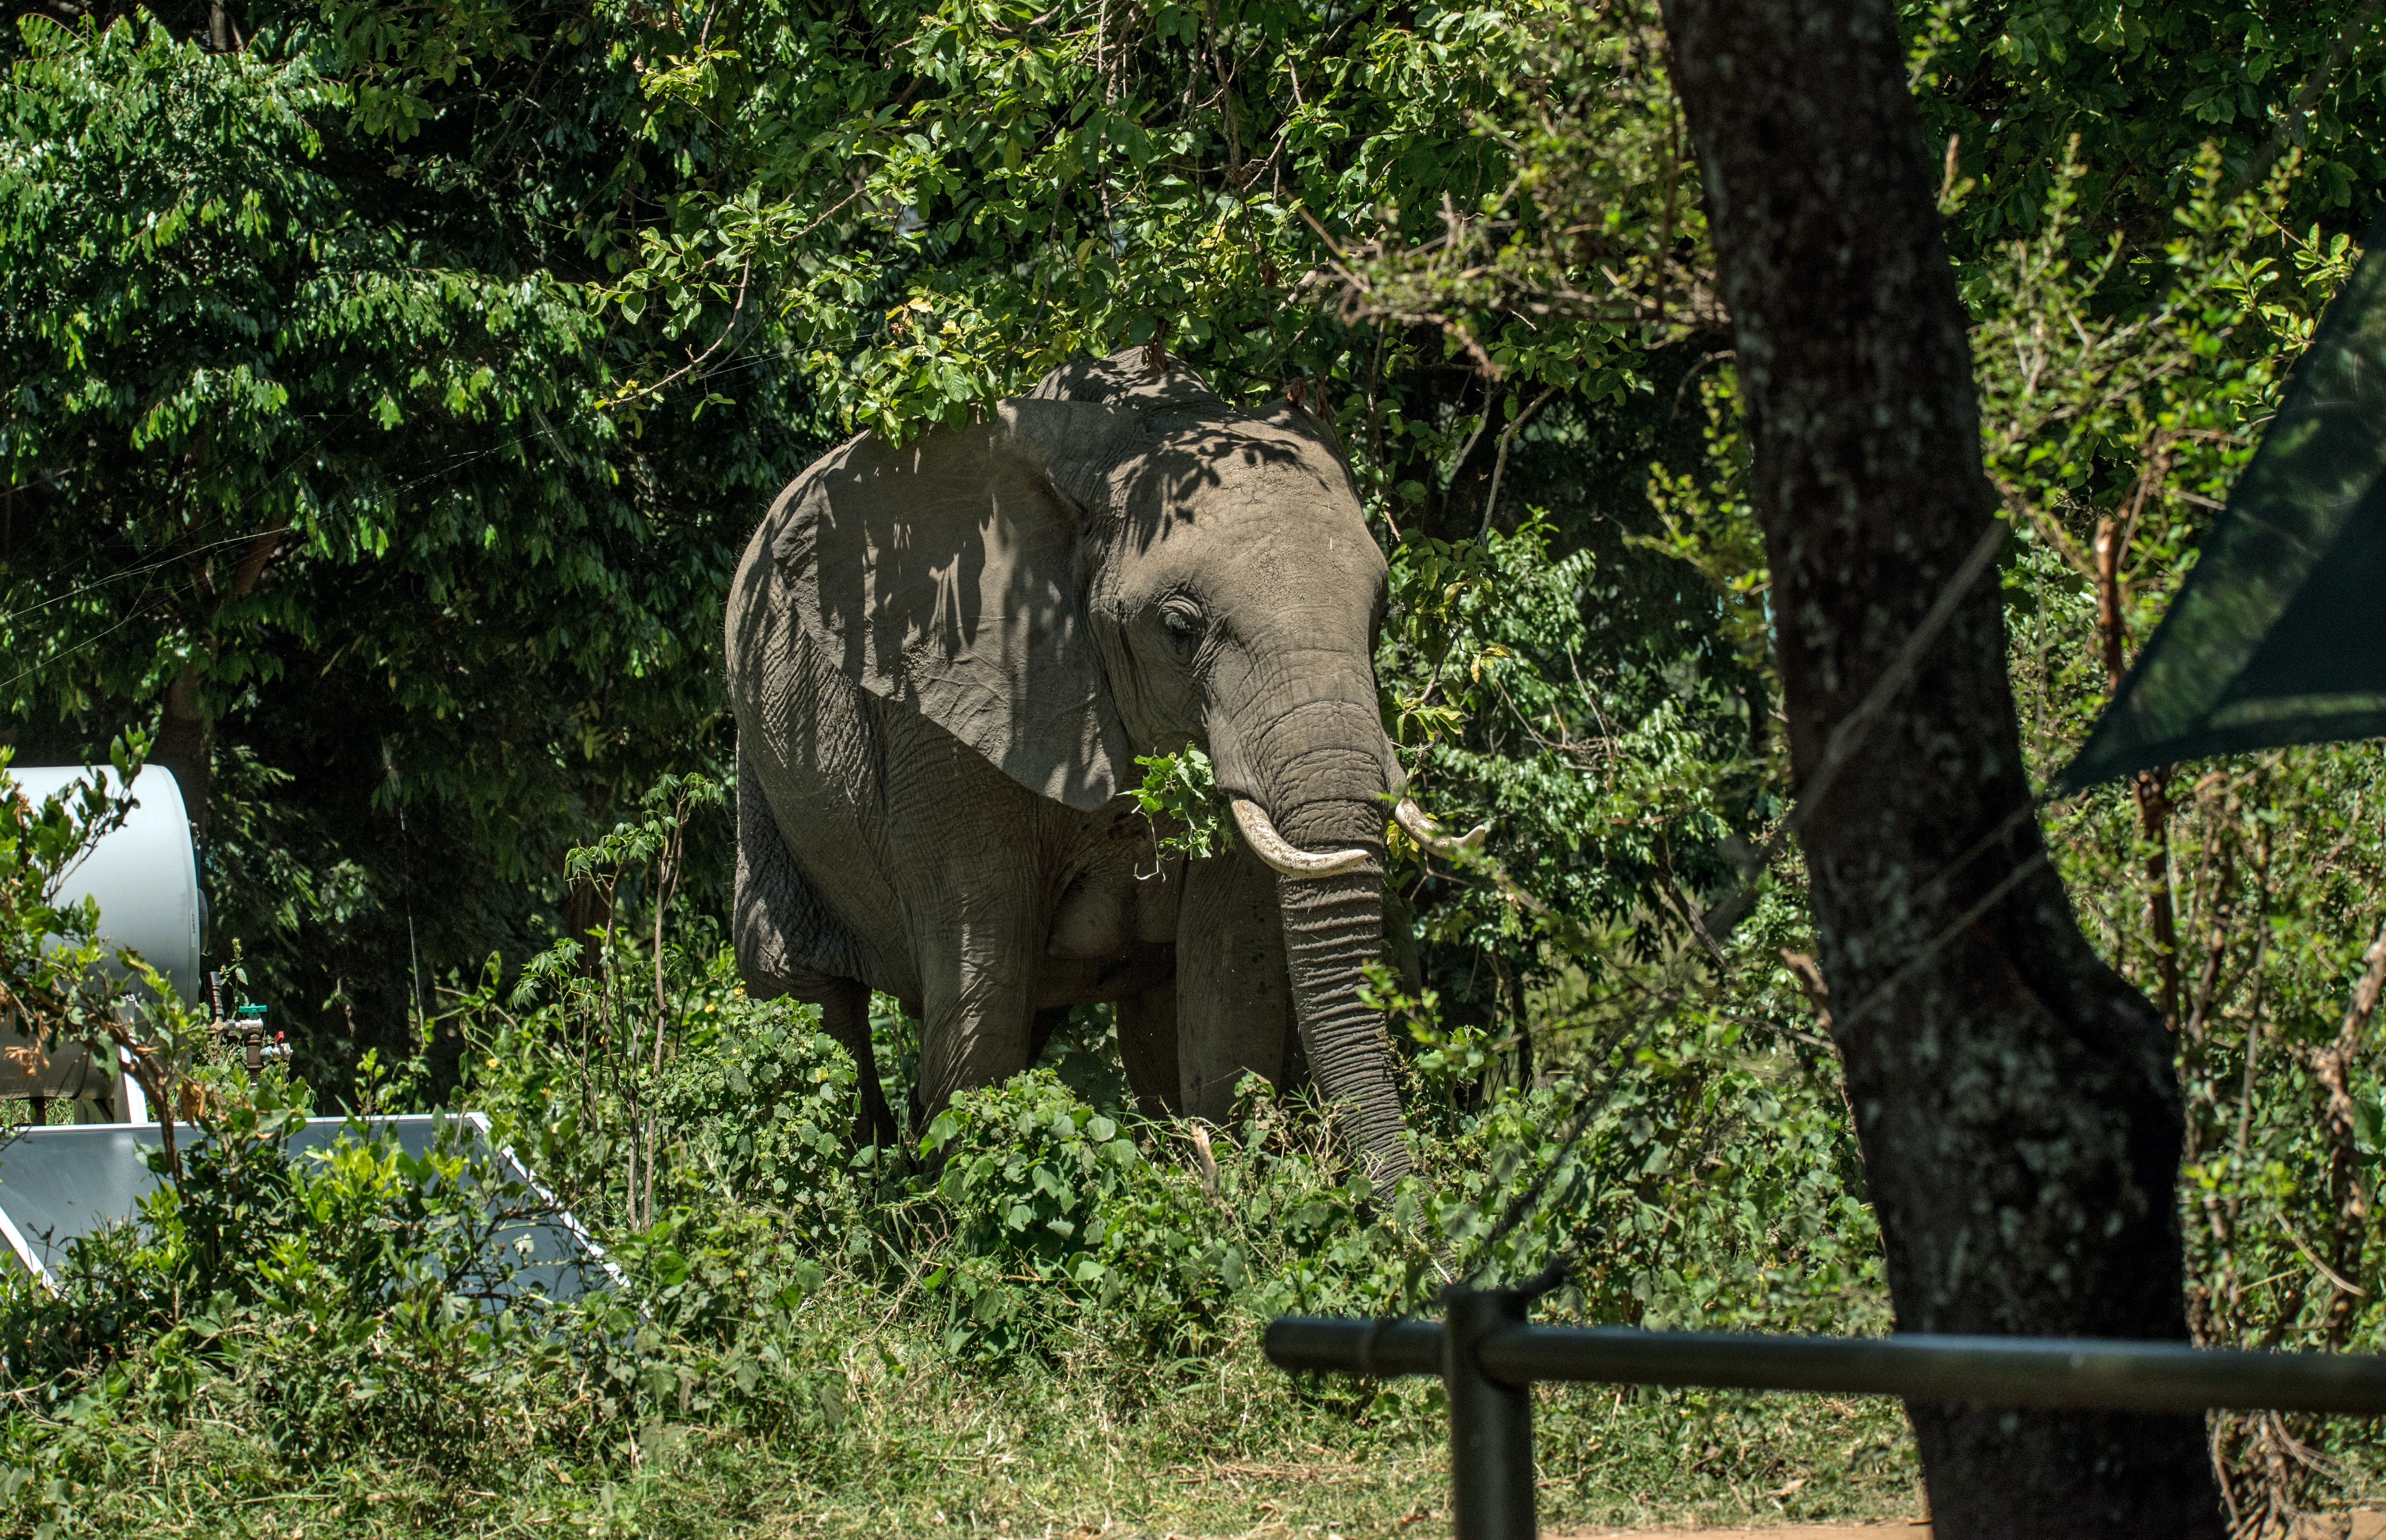 elephant standing near tree and gray tank during daytime